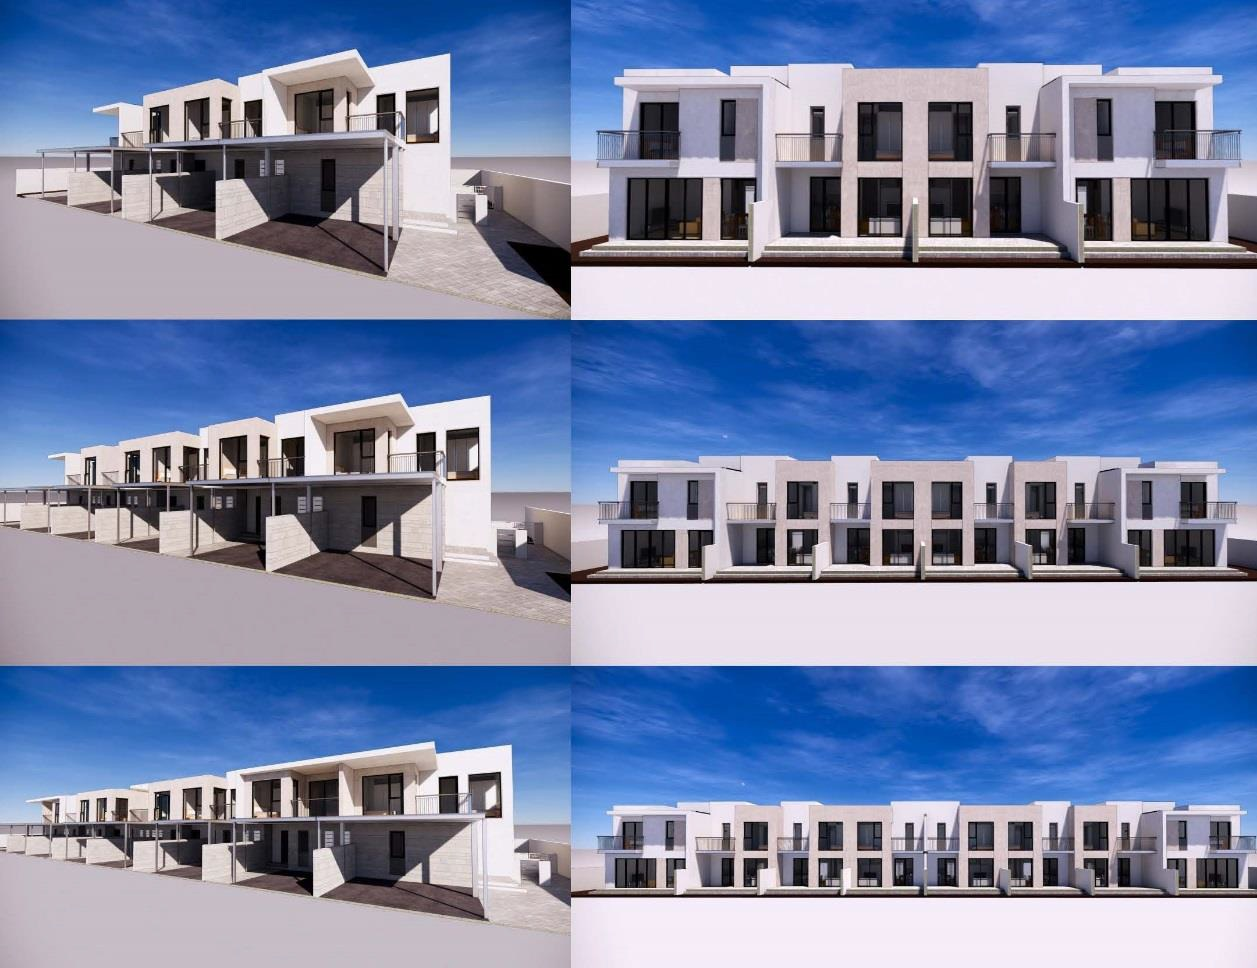 o Arabian Ranches II, Camelia 2, PA 03 – 426 Town Houses on Plot No. 6655420, Wadi Al Safa 7, Dubai UAE